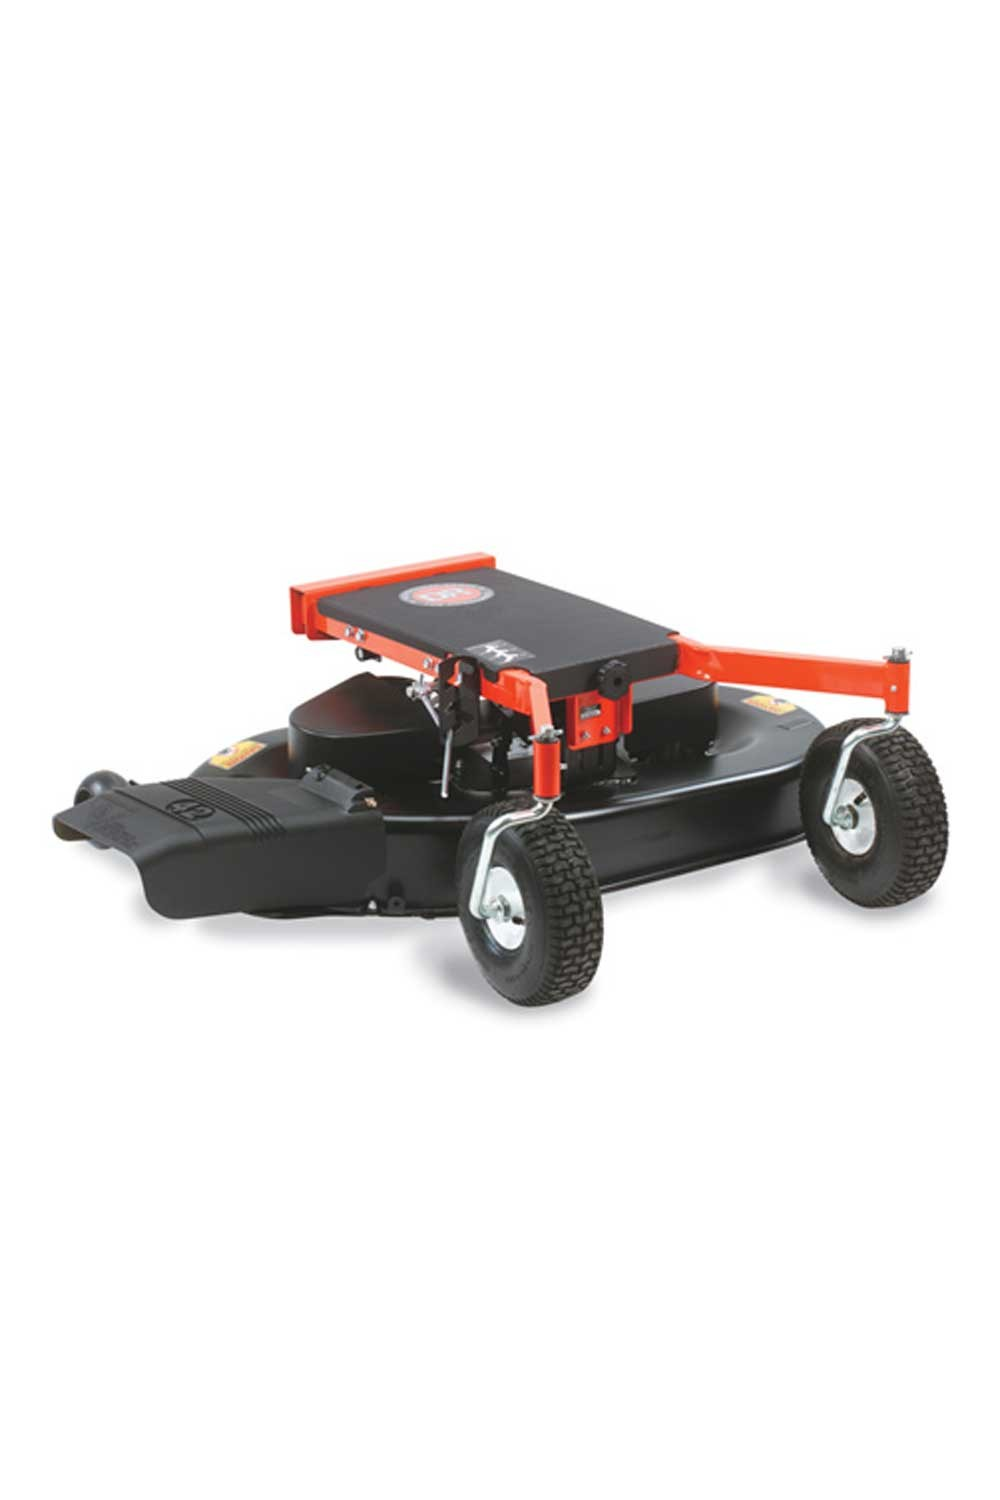 DR lawn mower attachment for field & brush mower